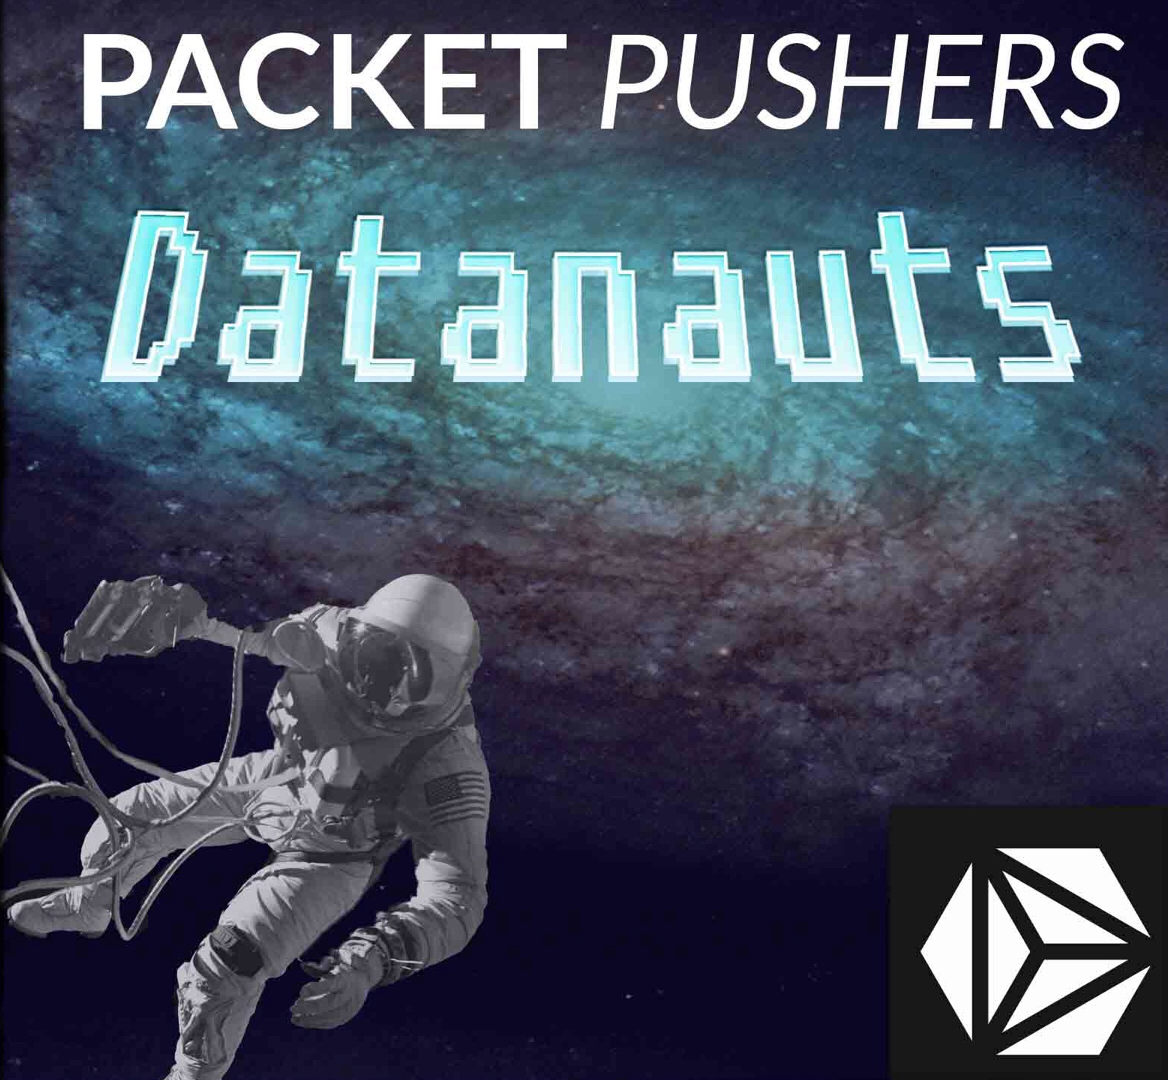 PacketPushers Datanauts - a general all-around technology podcast